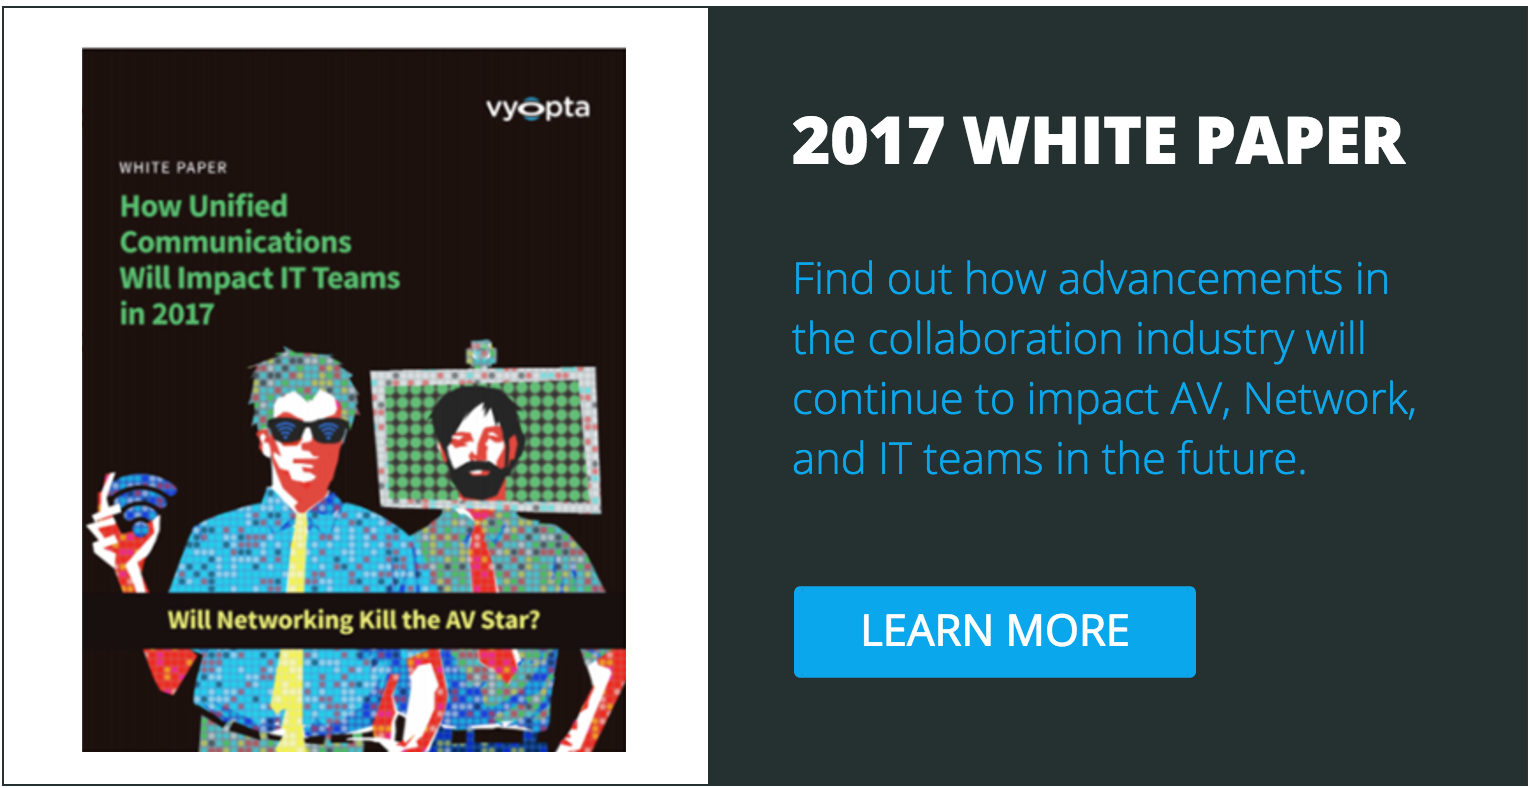 White Paper: AV/Network/IT White Paper for Collaboration